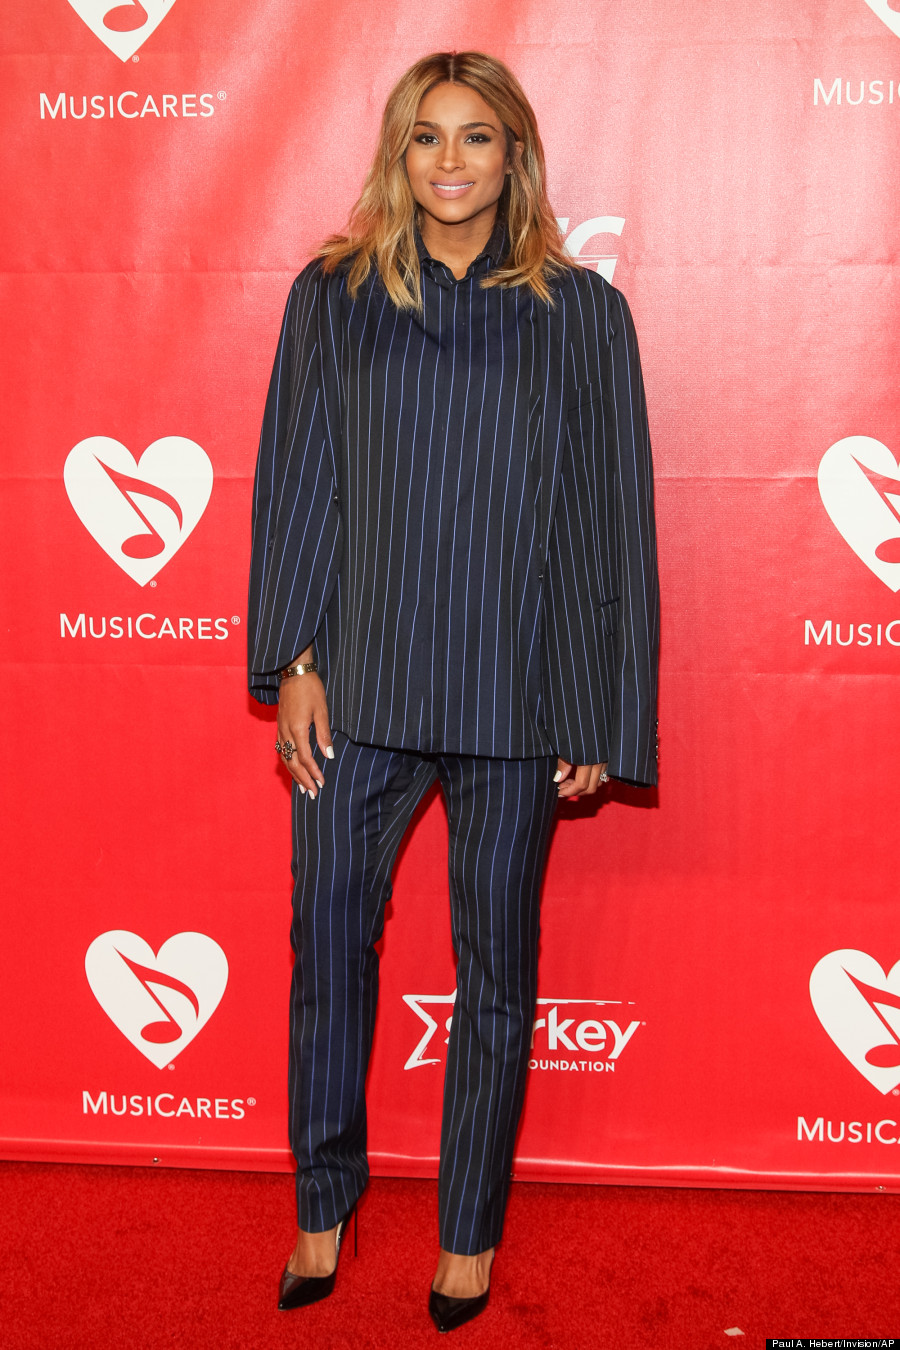 Ciara Grammys 2014 Singer S Baby Bump Is Gorgeous On Red